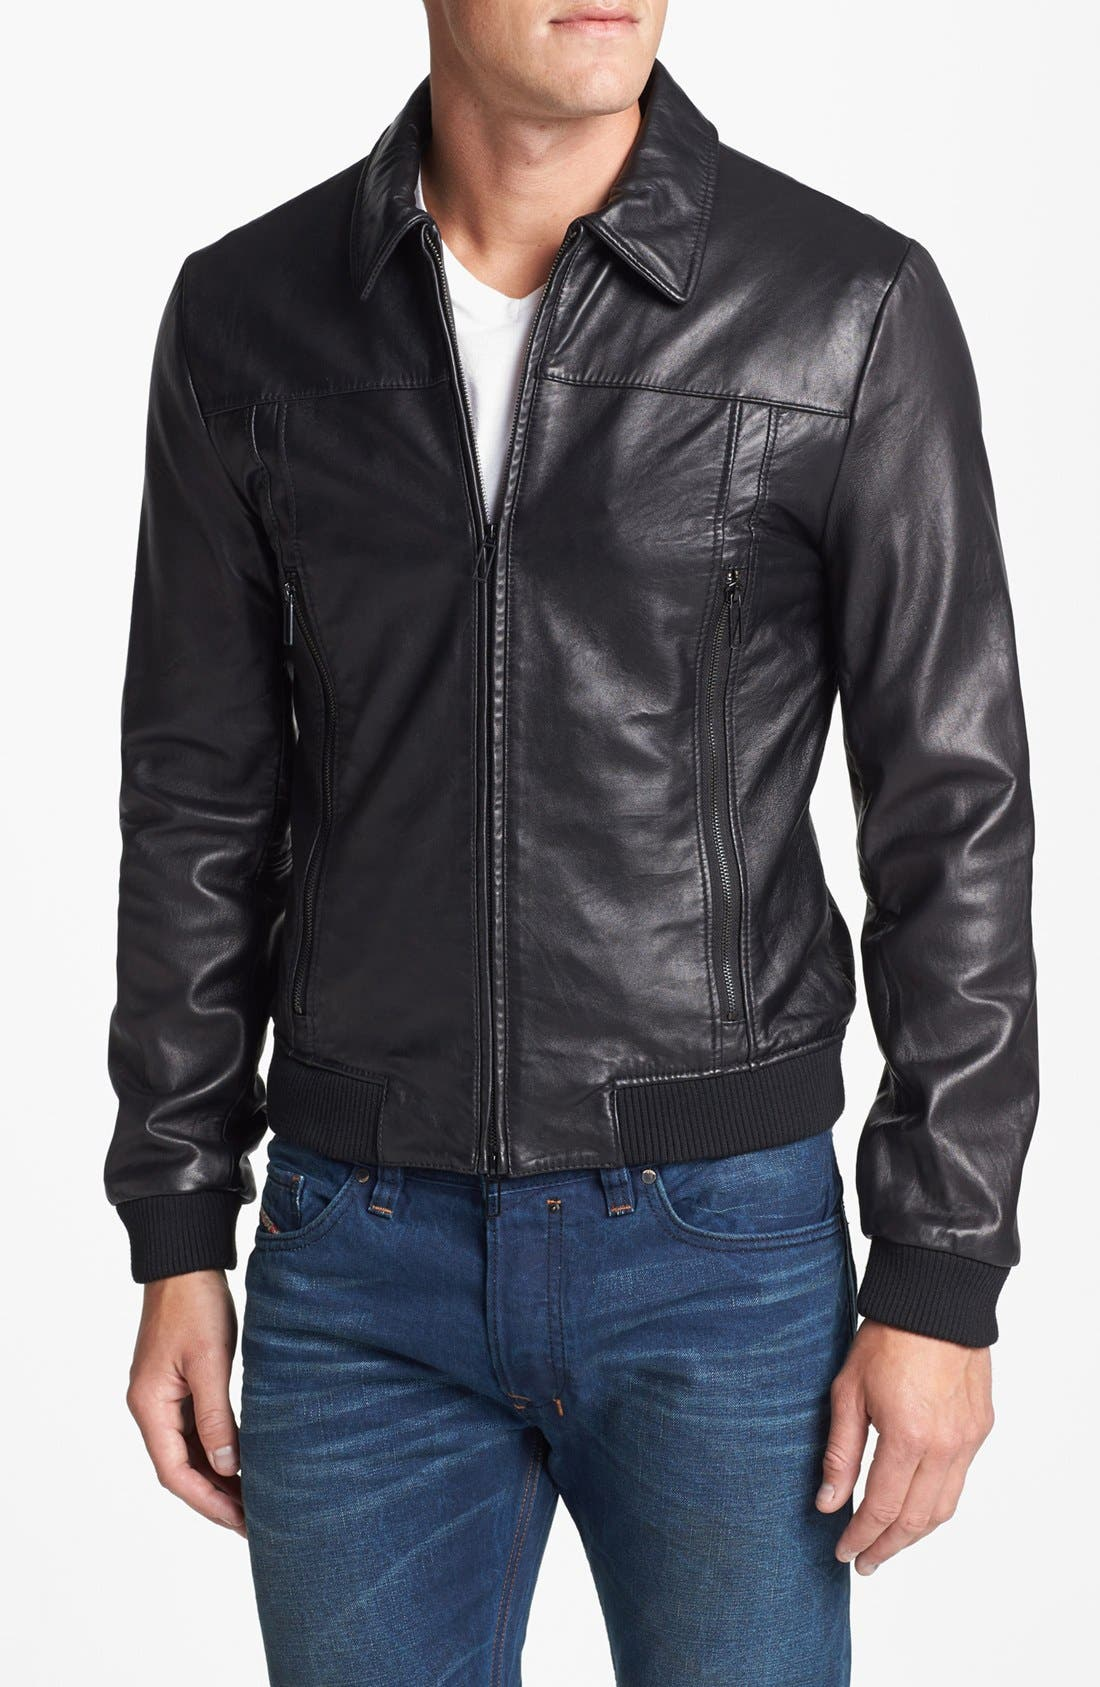 Main Image - 7 Diamonds 'Spyder' Leather Jacket